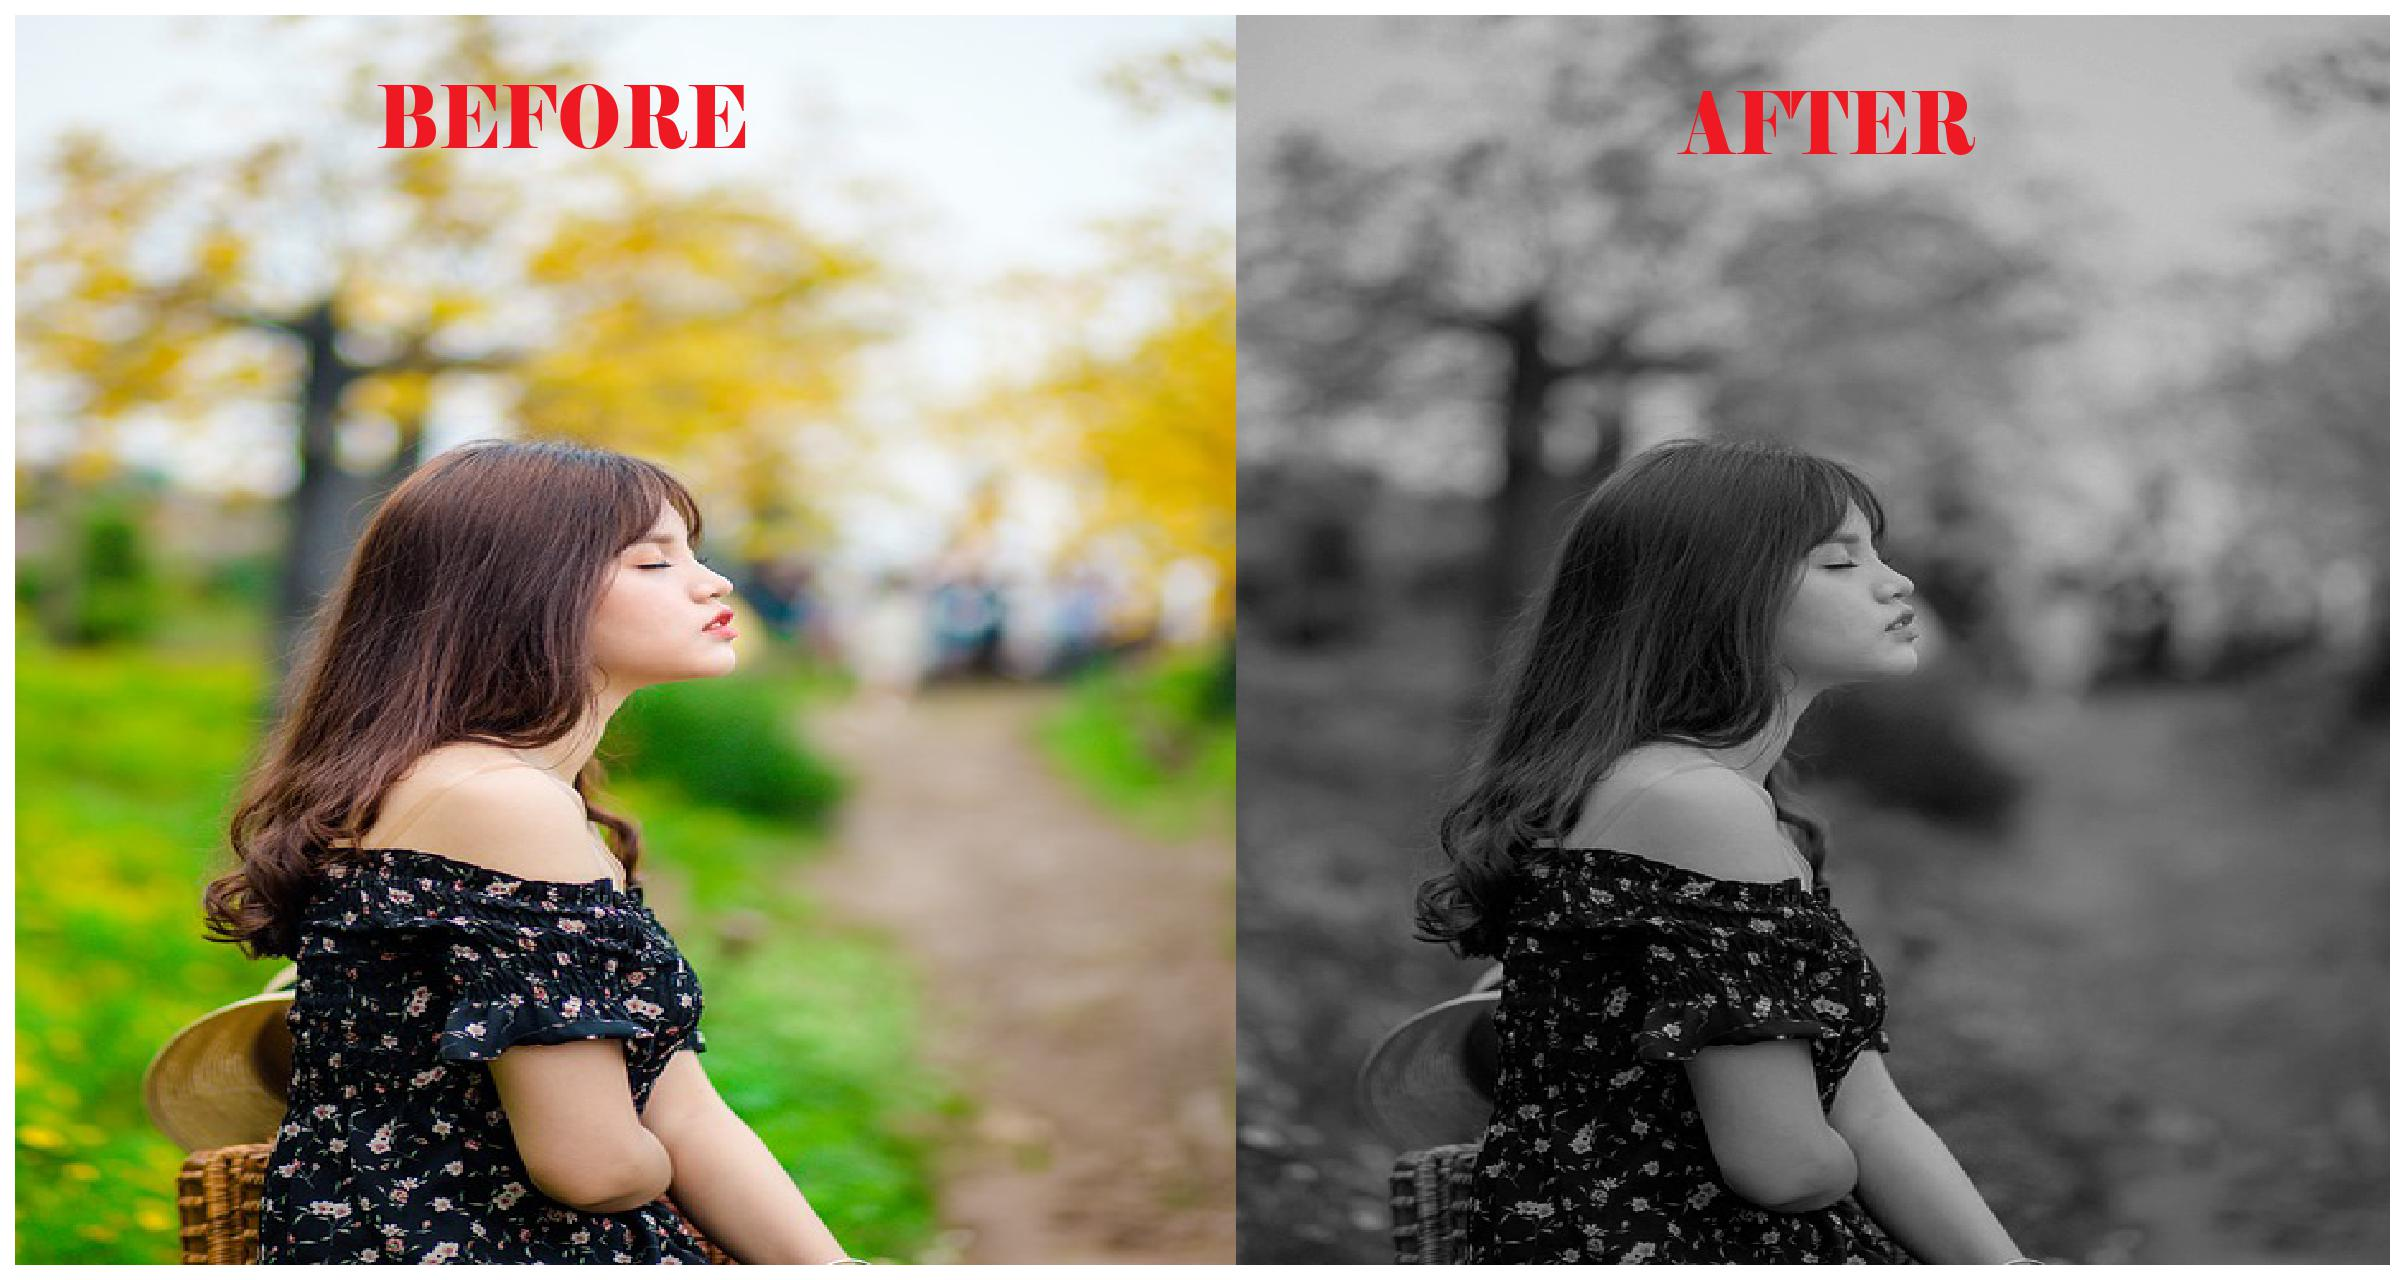 I will transform your 50 images into black & white in one day